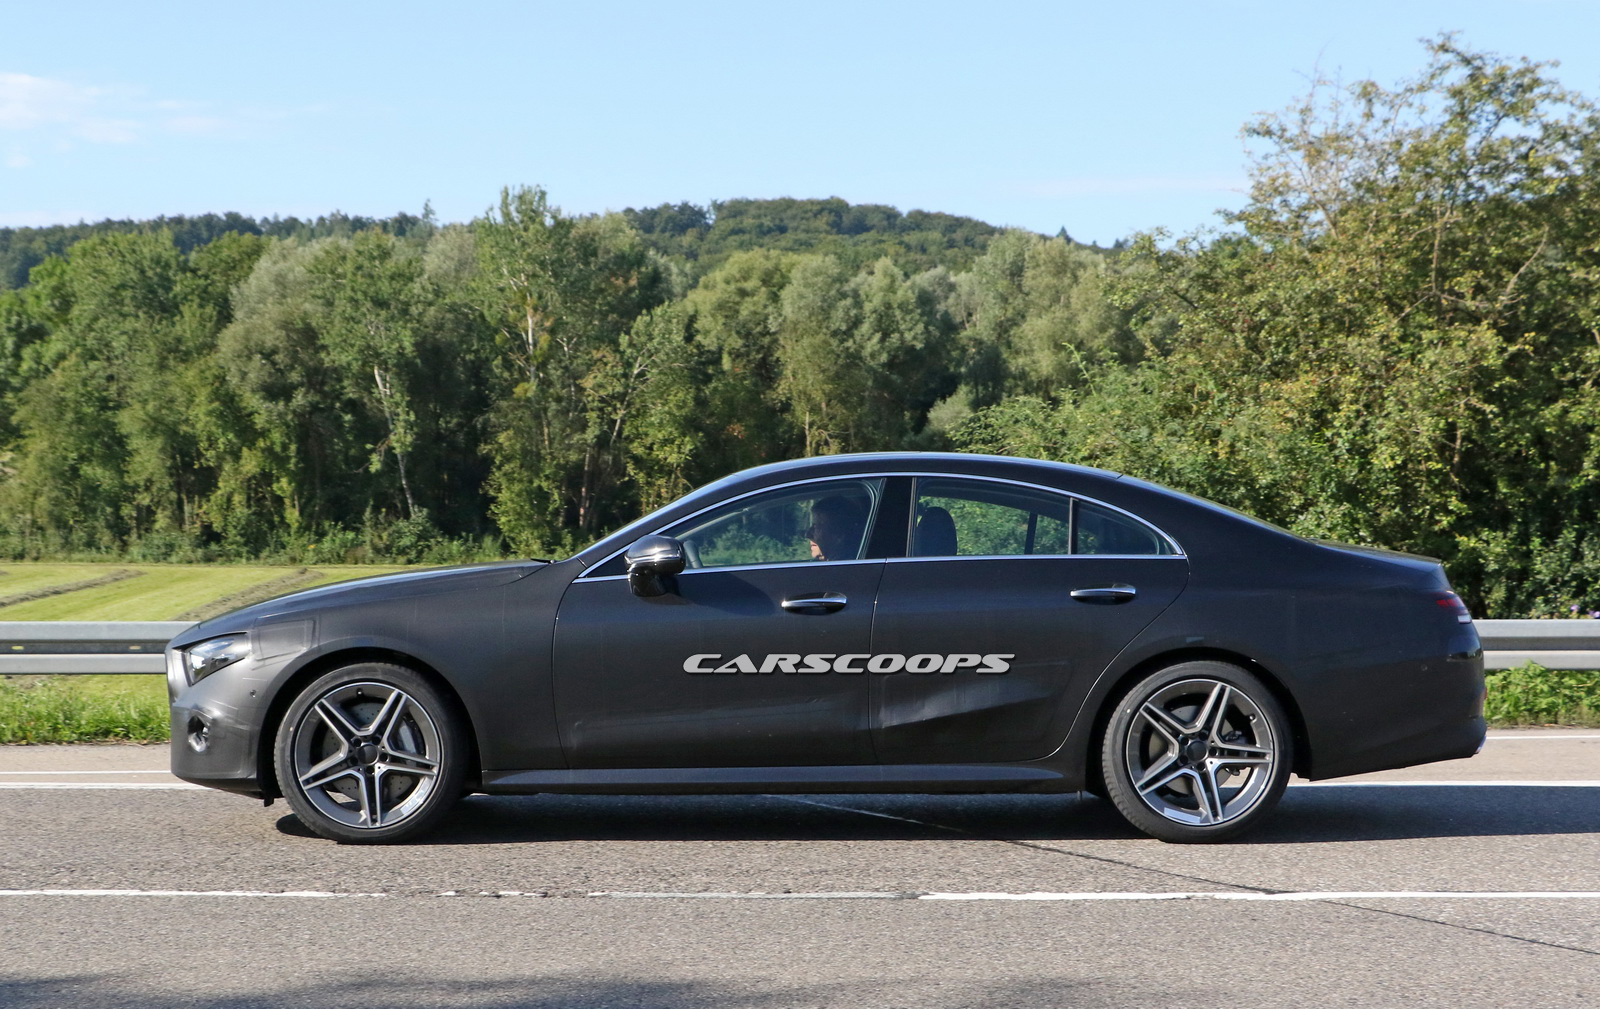 2018 mercedes cls enters final development phase drops camo almost completely carscoops. Black Bedroom Furniture Sets. Home Design Ideas